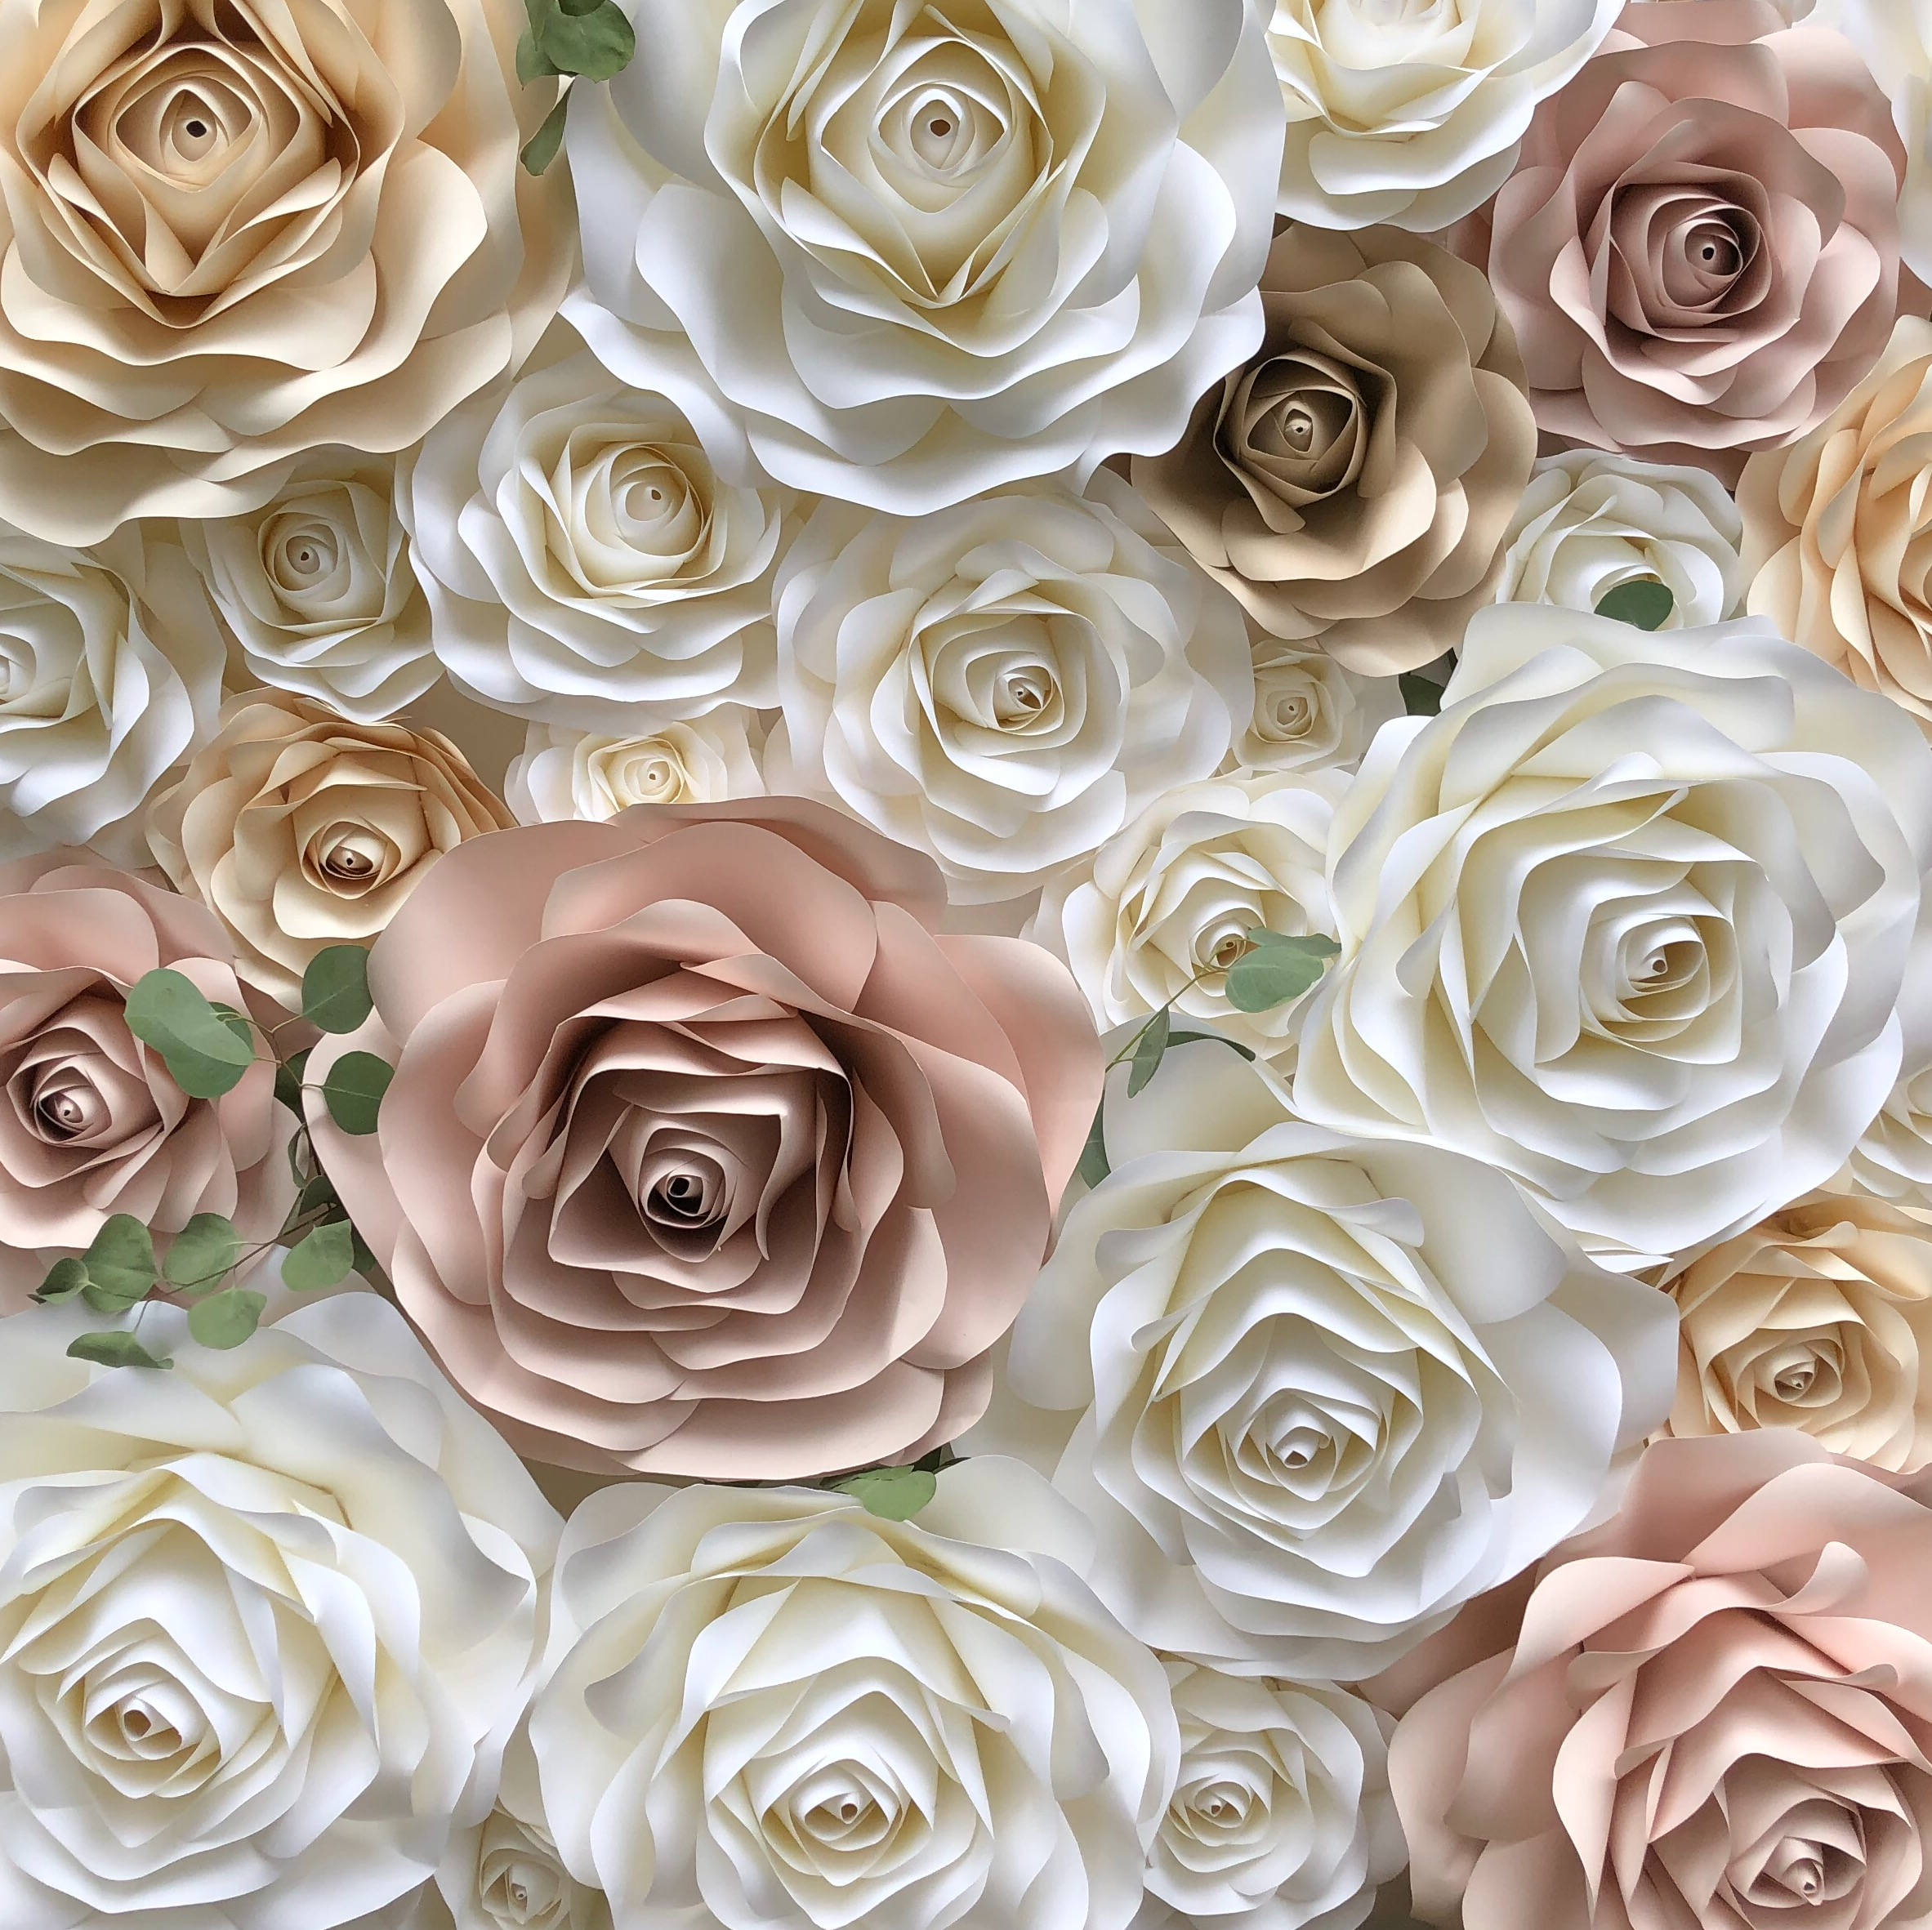 Laurena  white, blush, cream & taN. accented with a hint of greenery